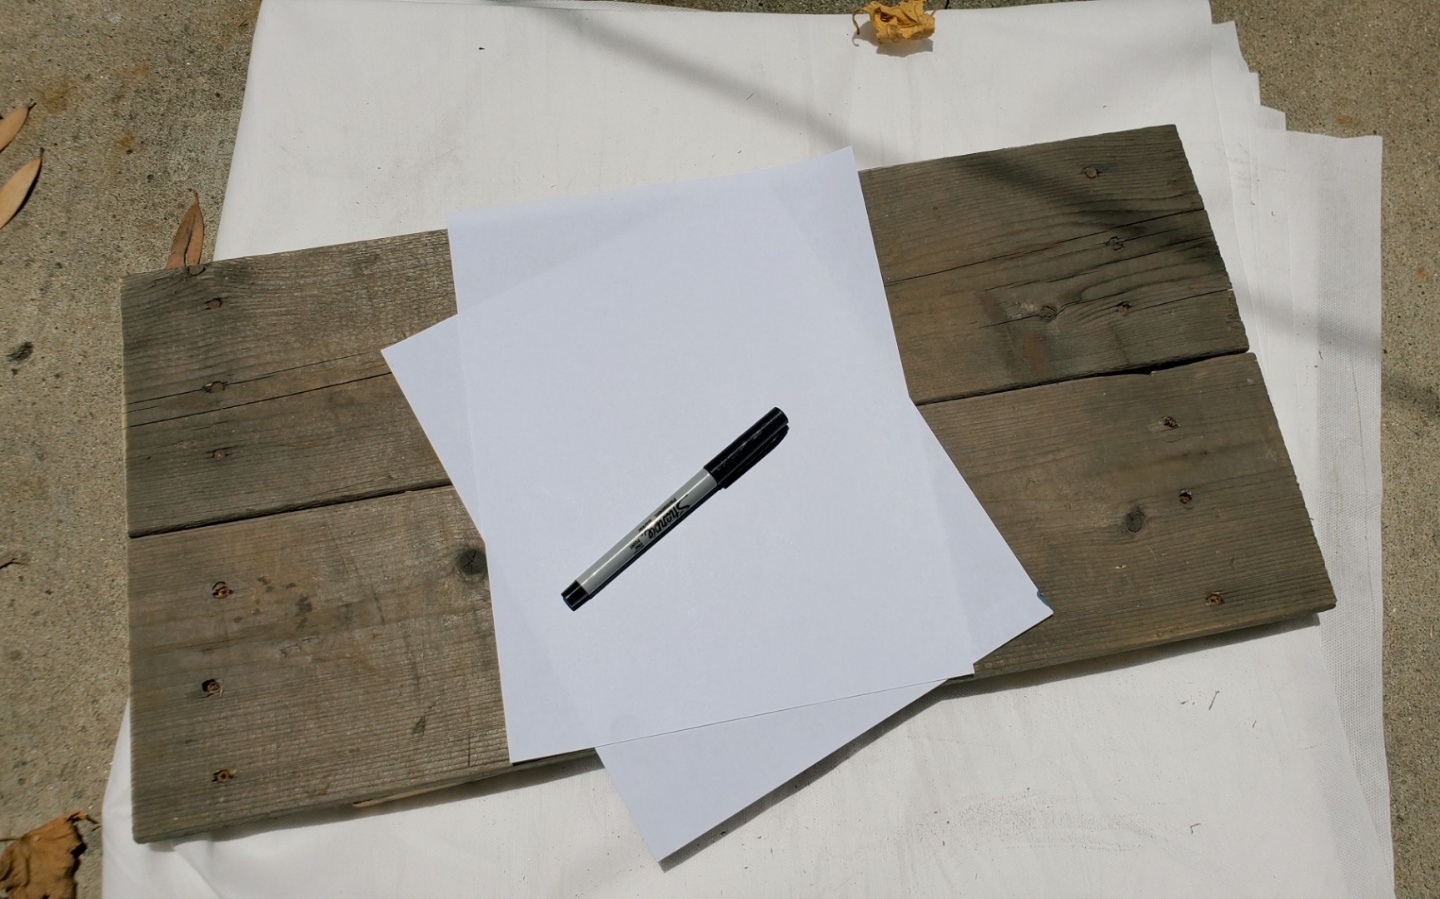 Two pieces of paper and a marker sitting on the wood surface